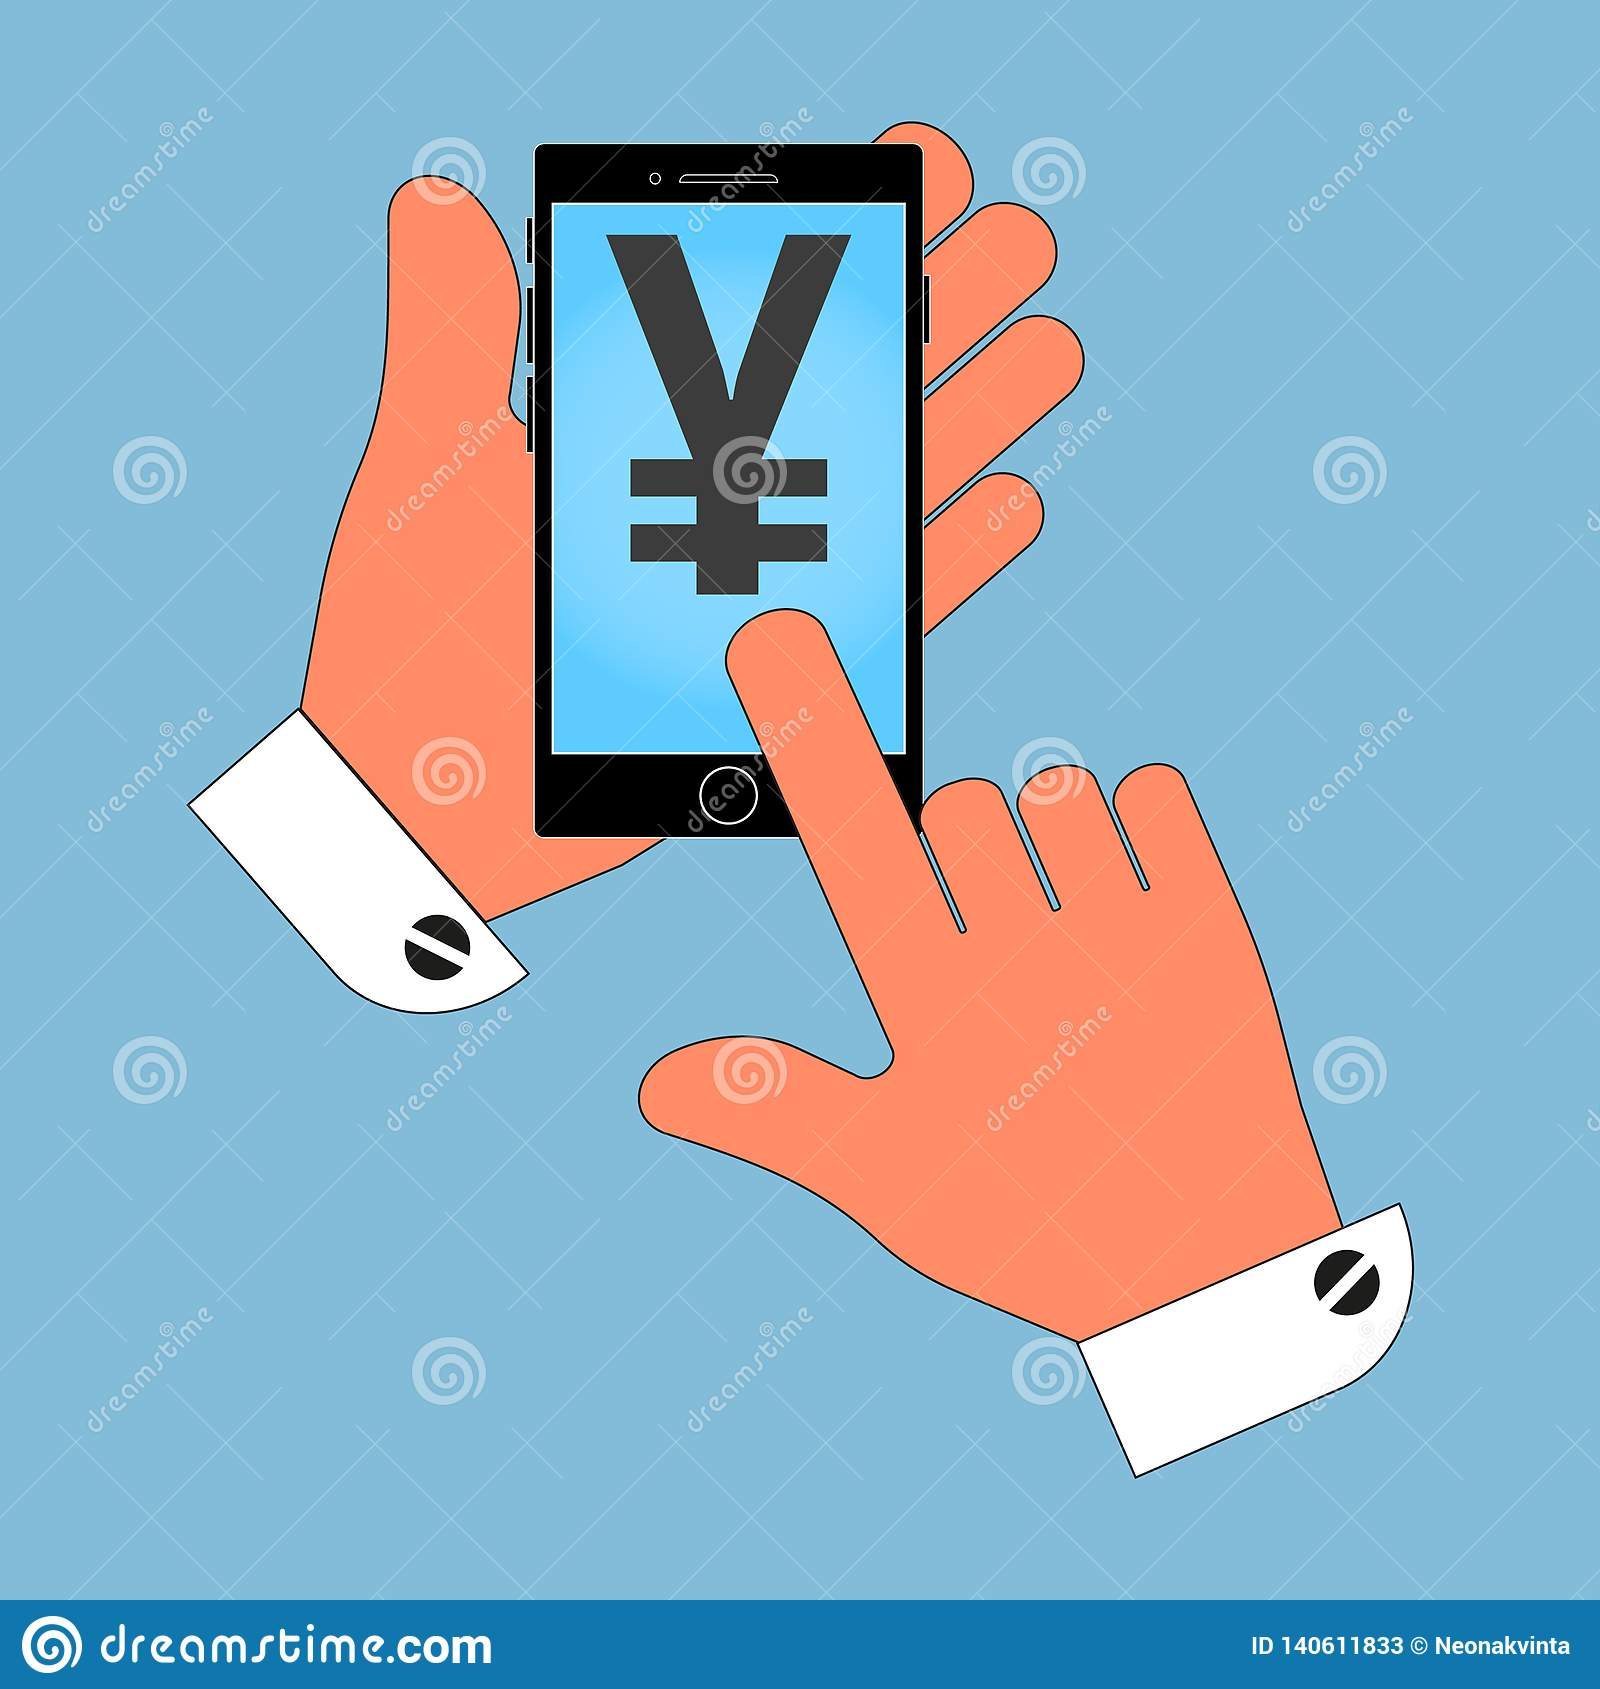 Phone icon in the hand, with the icon Japan yen on the screen, isolation on a blue background.